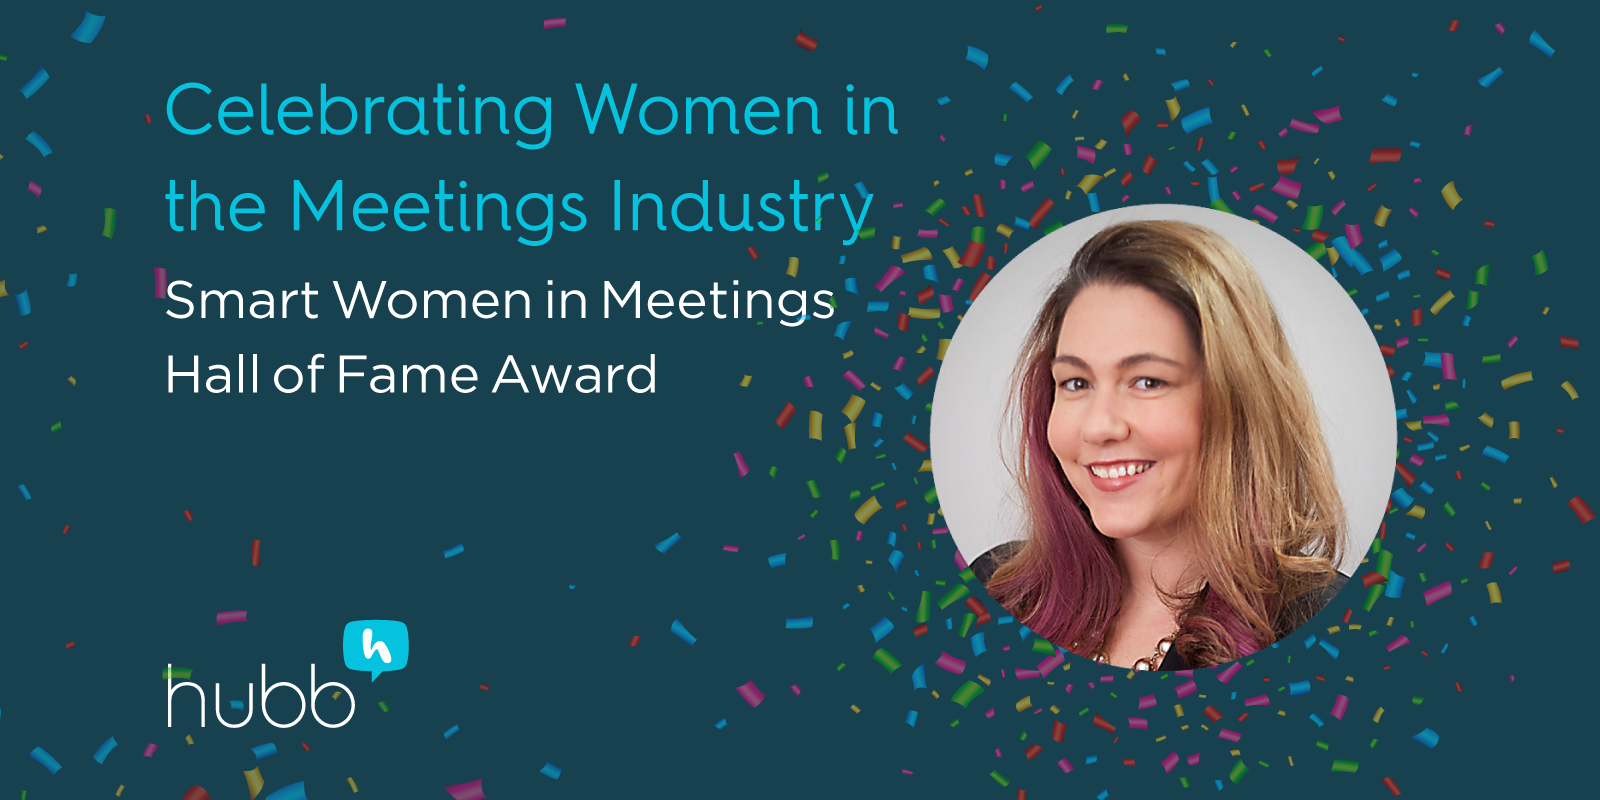 CelebratingWomen-in-MeetingsIndustry-Social